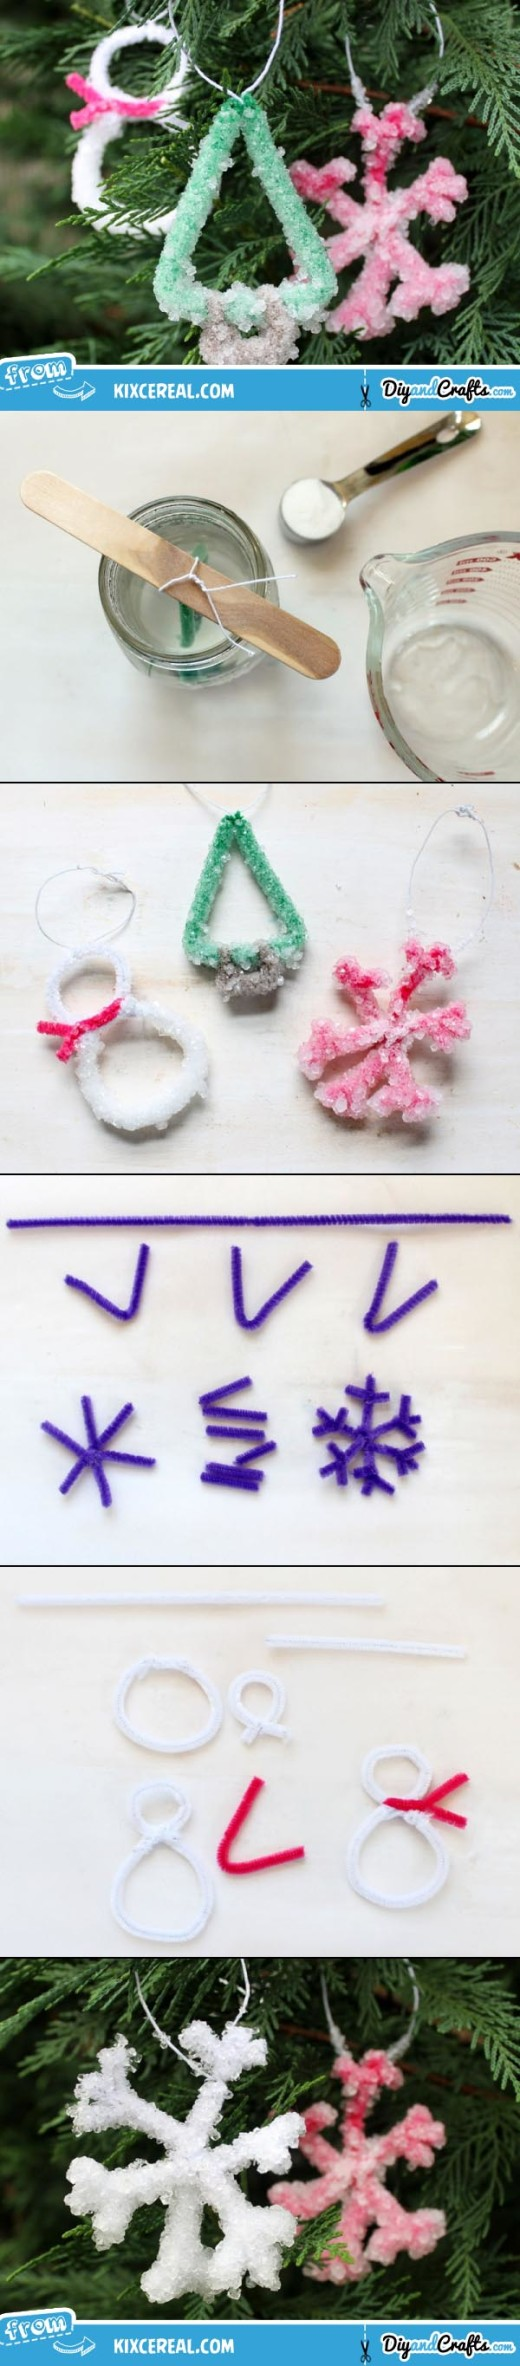 Crystal-Coated Pipe Cleaner Ornaments | DIY